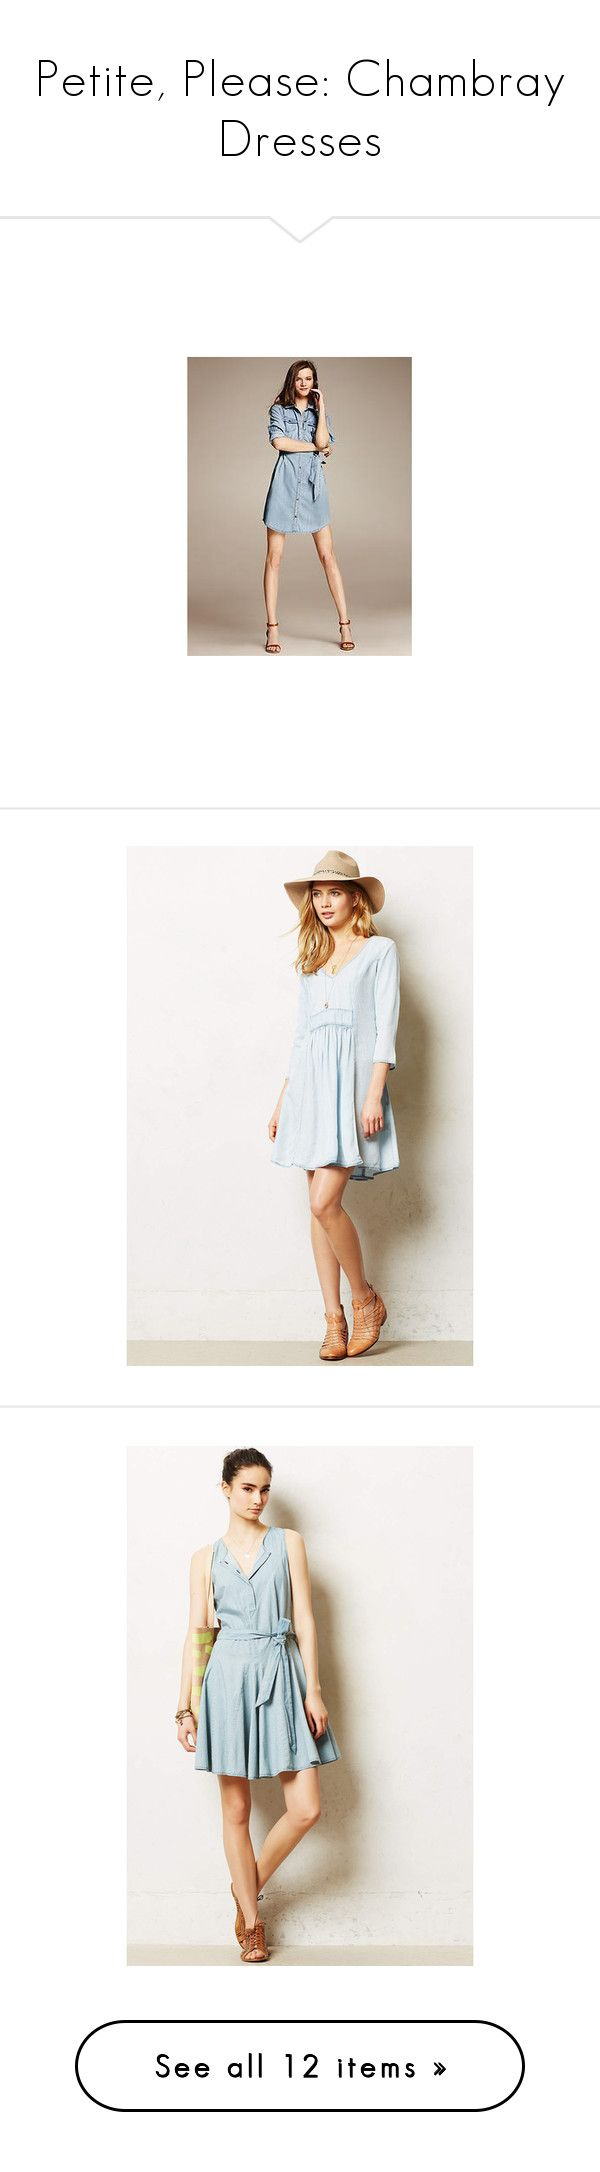 """Petite, Please: Chambray Dresses"" by polyvore-editorial ❤ liked on Polyvore featuring chambraydress, petiteplease, dresses, long shirt dress, petite shirt dress, sash belt, tie front shirt dress, banana republic dresses, light denim and petite"